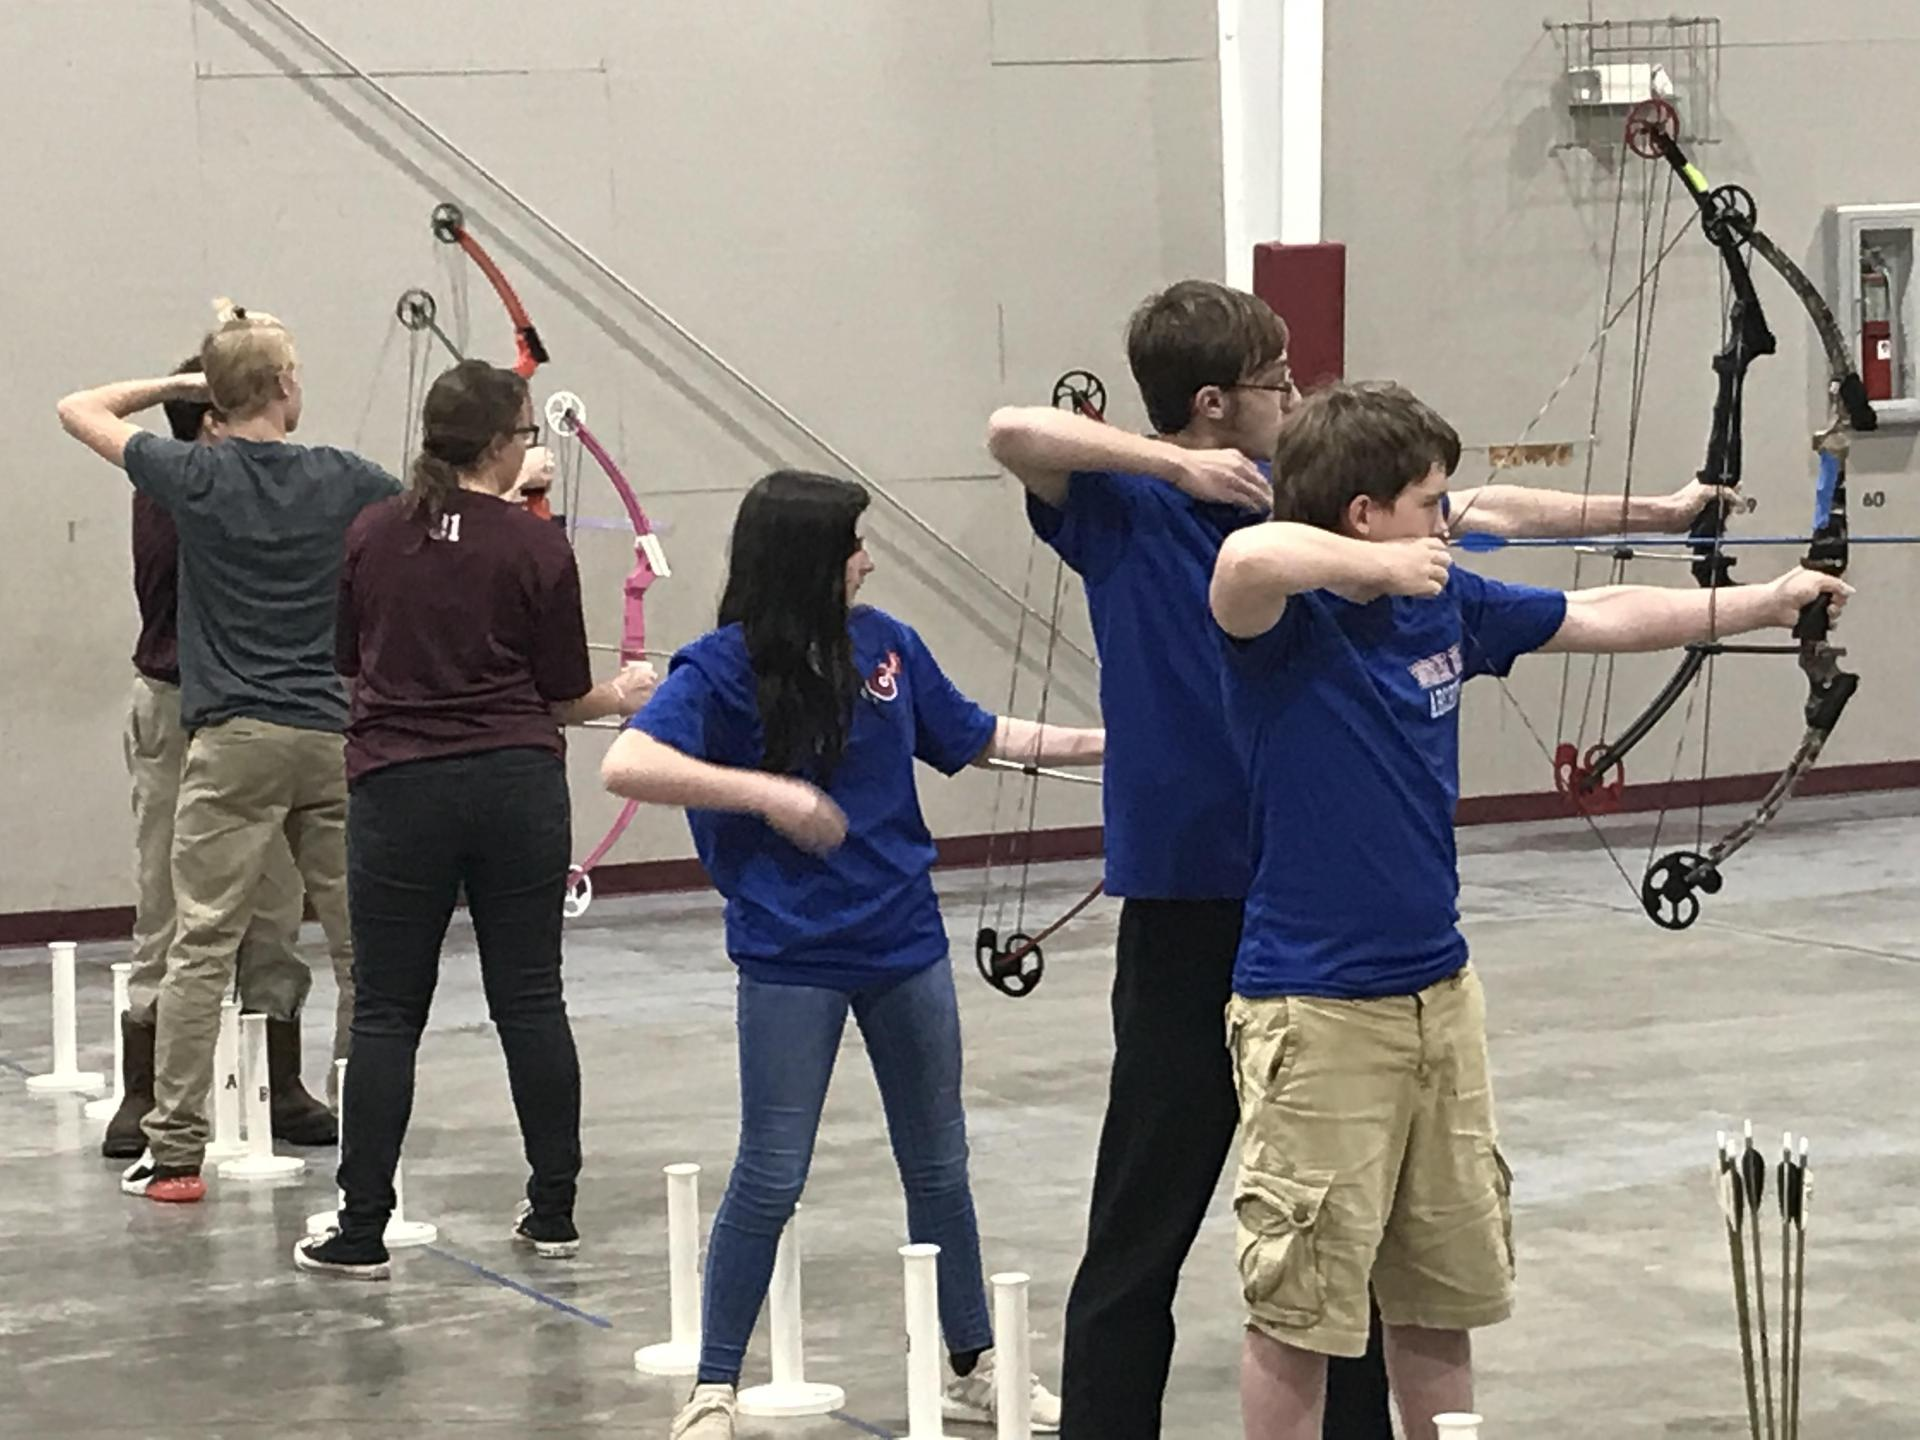 Southeast and Clarkdale archery athletes competiting.